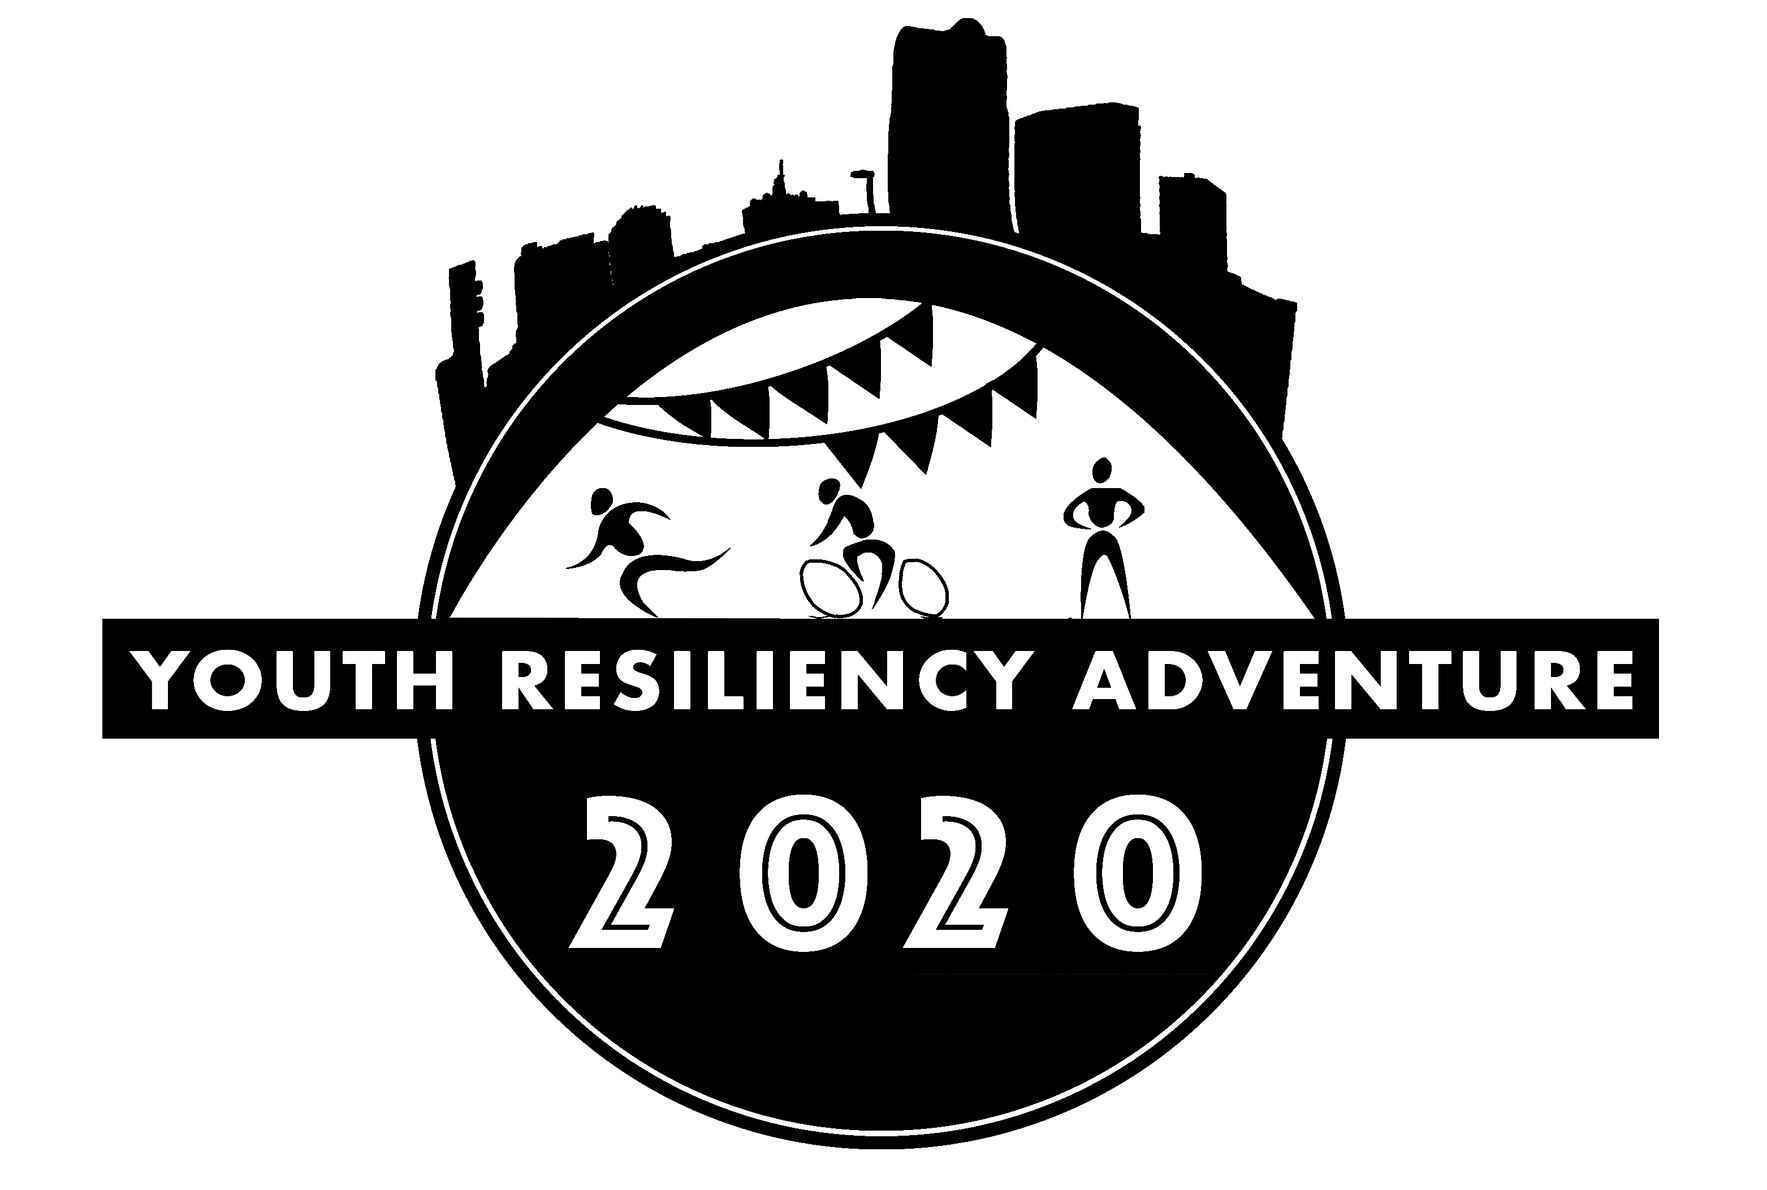 Join Scott as he rides his bike 4200 miles across the U.S. image